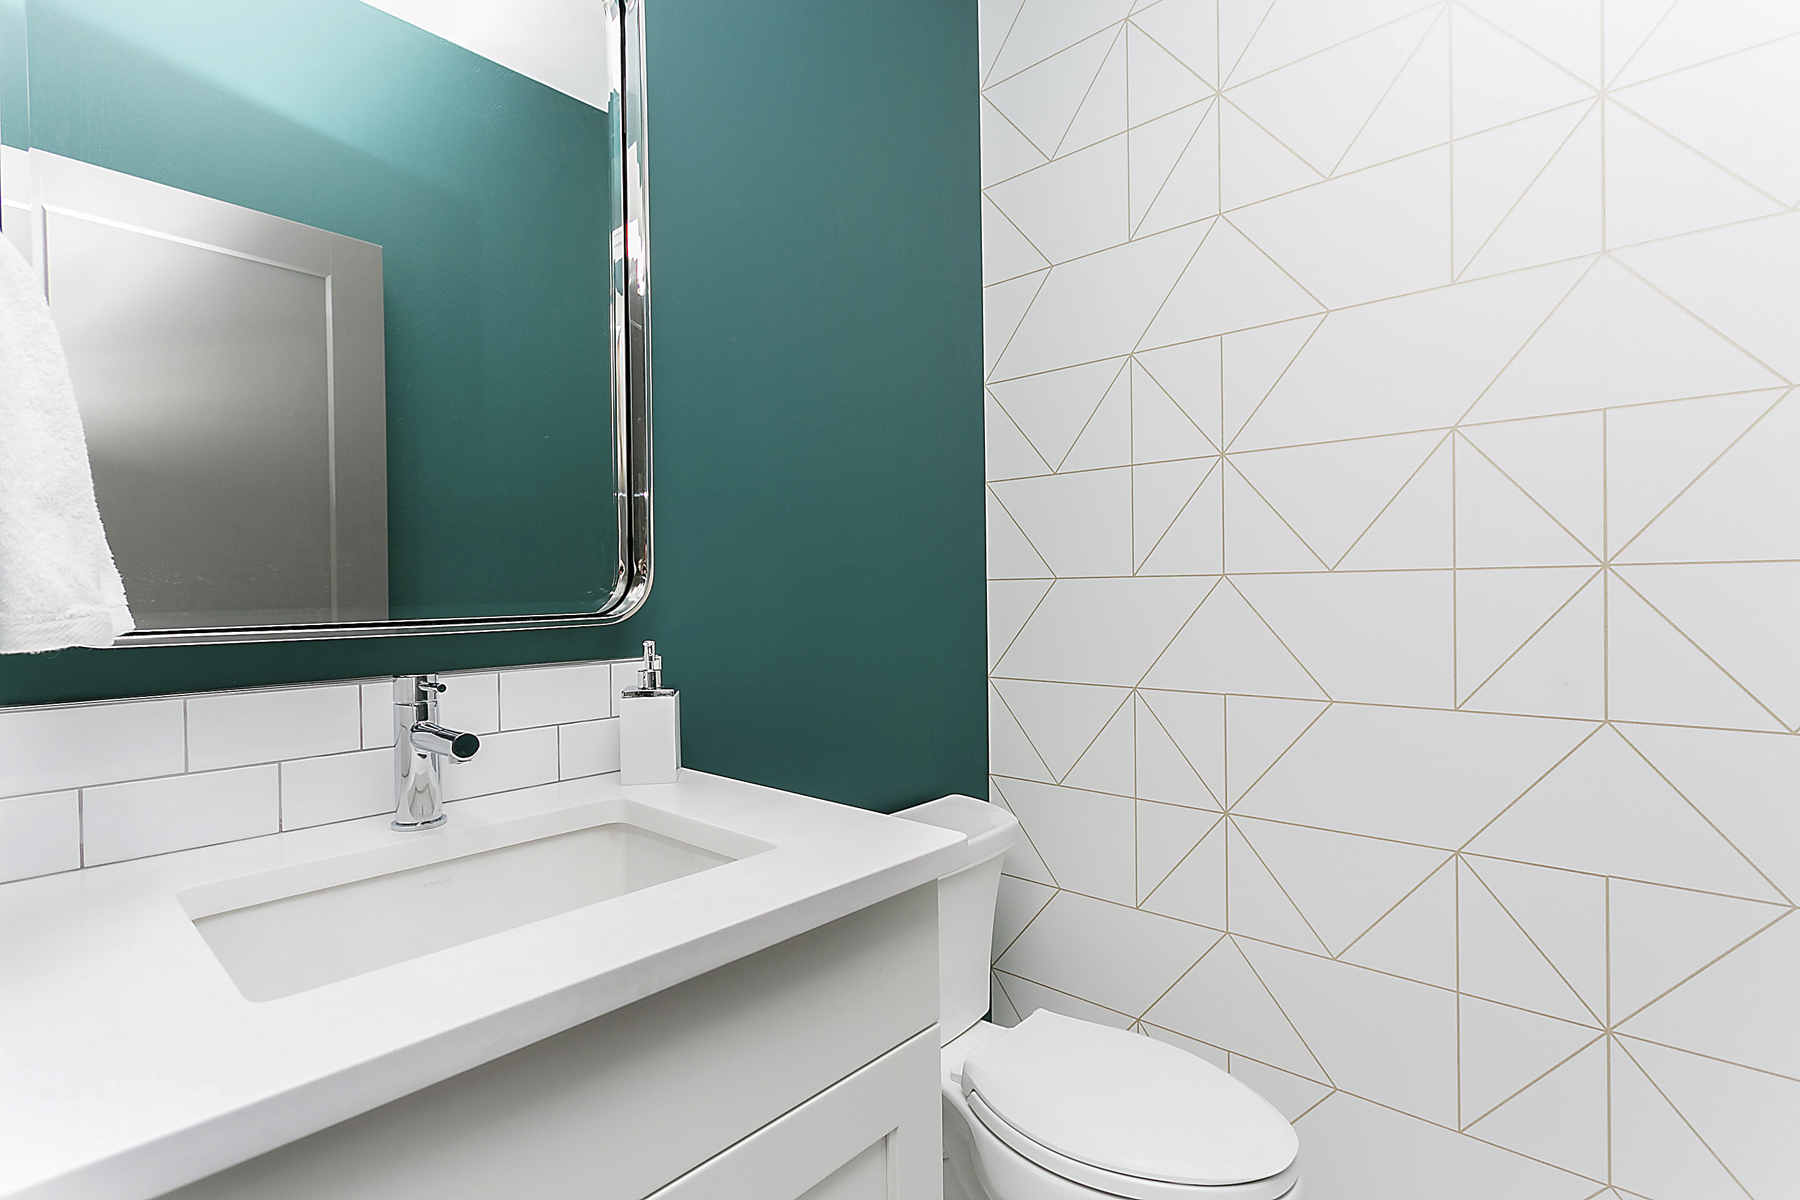 bathroom with sink against teal wall and geometric gold pattern on white wallpaper on feature wall